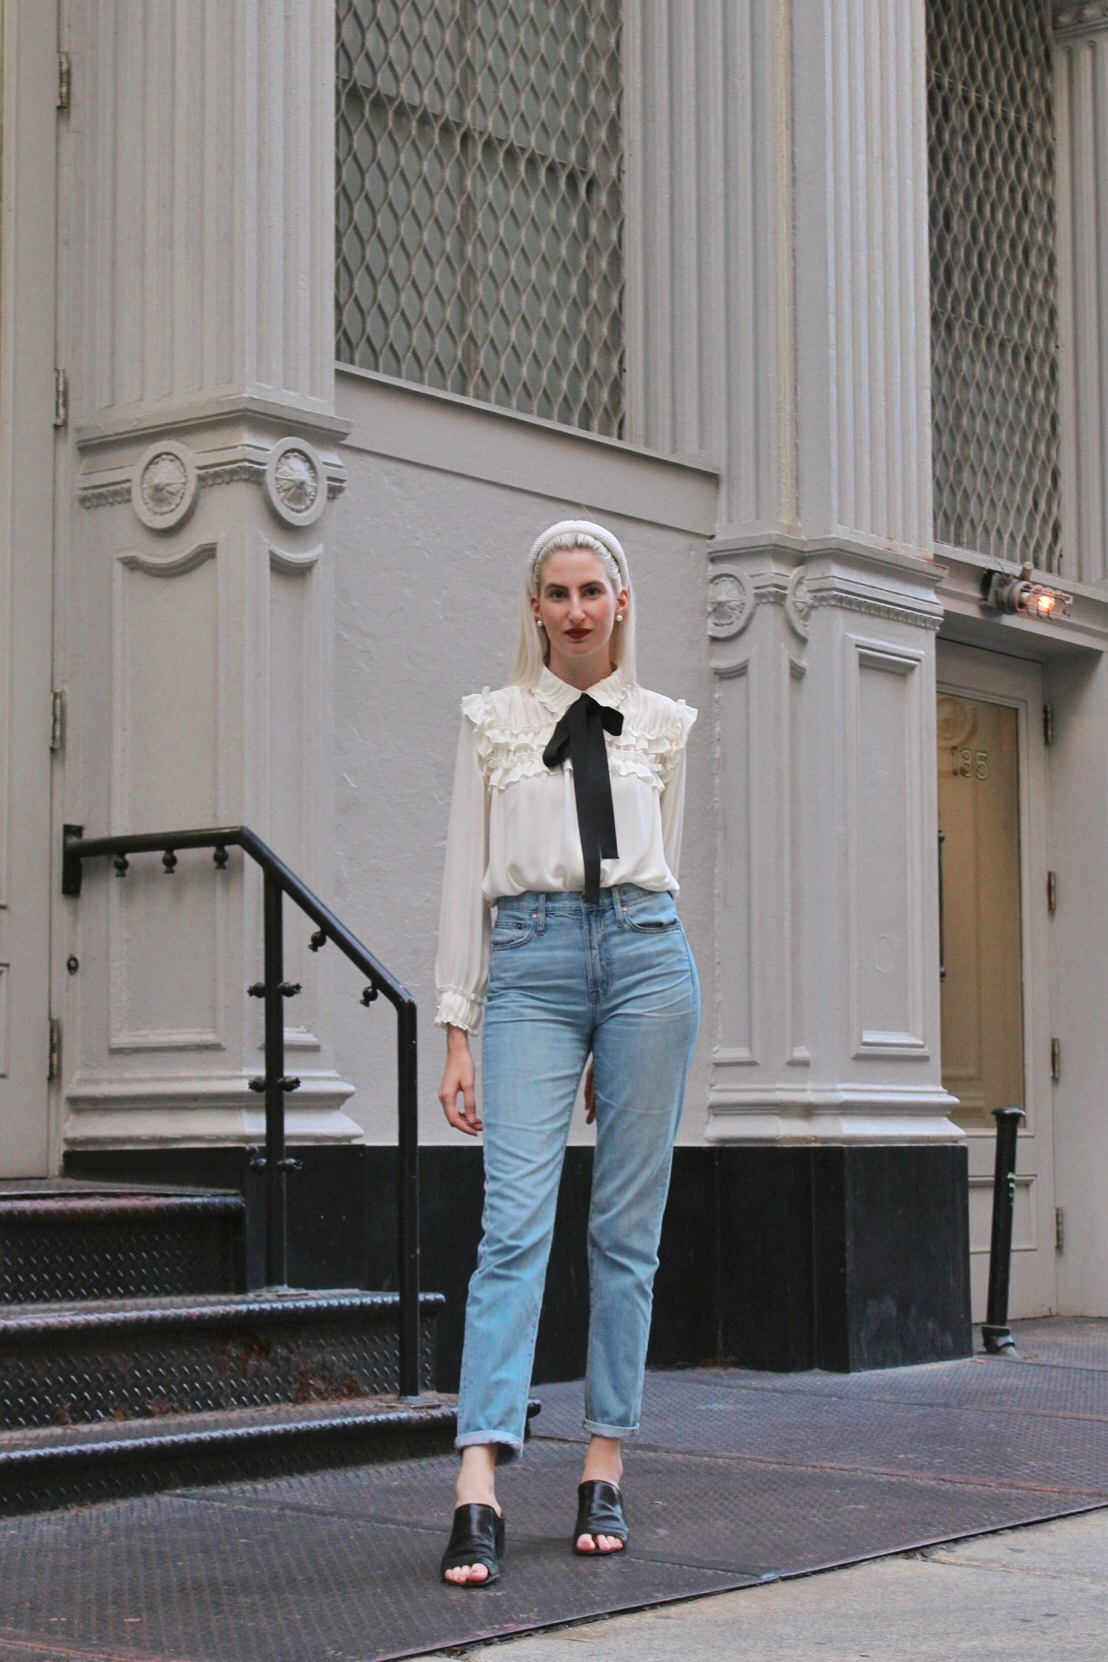 Her Style, Romanticism with Charmaine Charmant and Audra Koch. Interviews with stylish women, bloggers to follow, best fashion bloggers, best influencers, best blogs